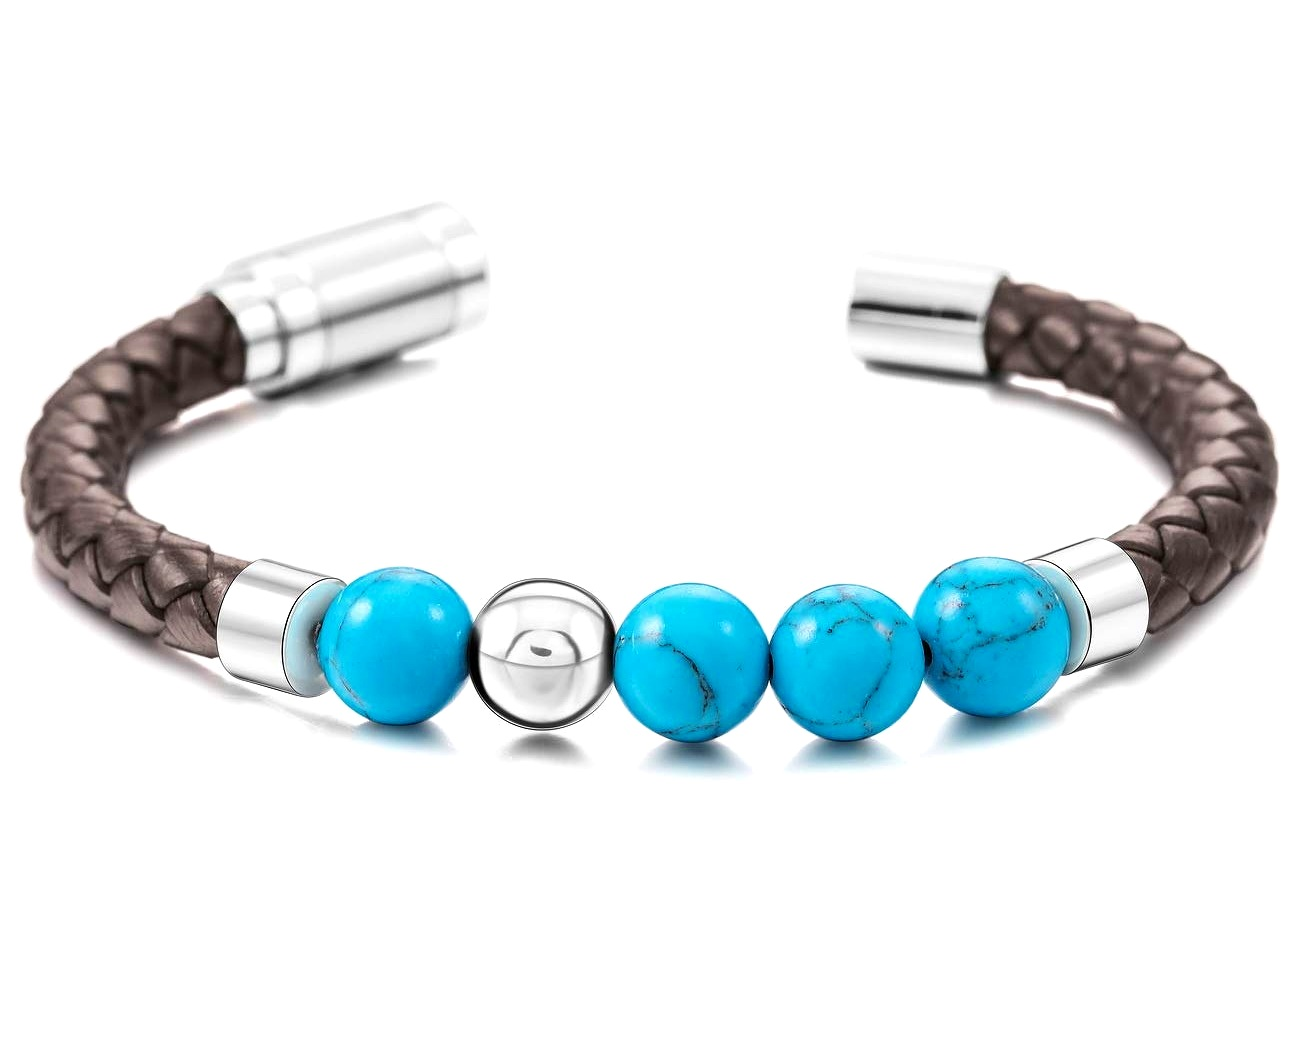 Best-mens-bracelet-healing-stones-ameriacan-turquoise-genuine-leather-stainless-steel-jewelry-for-men-red-brown-cool-peaceful-island-com.jpg